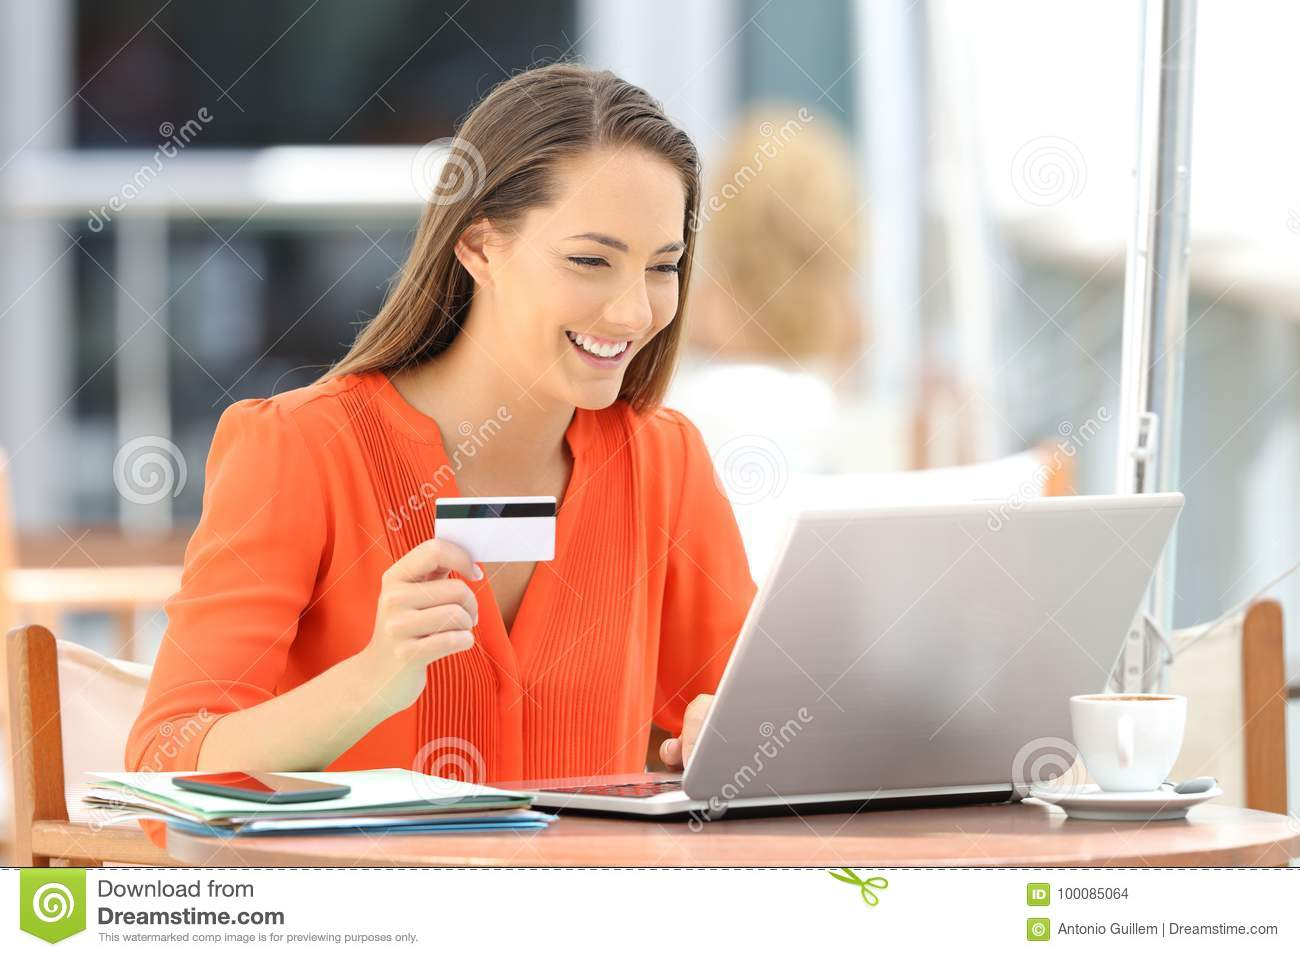 Woman in orange paying on line with a credit card